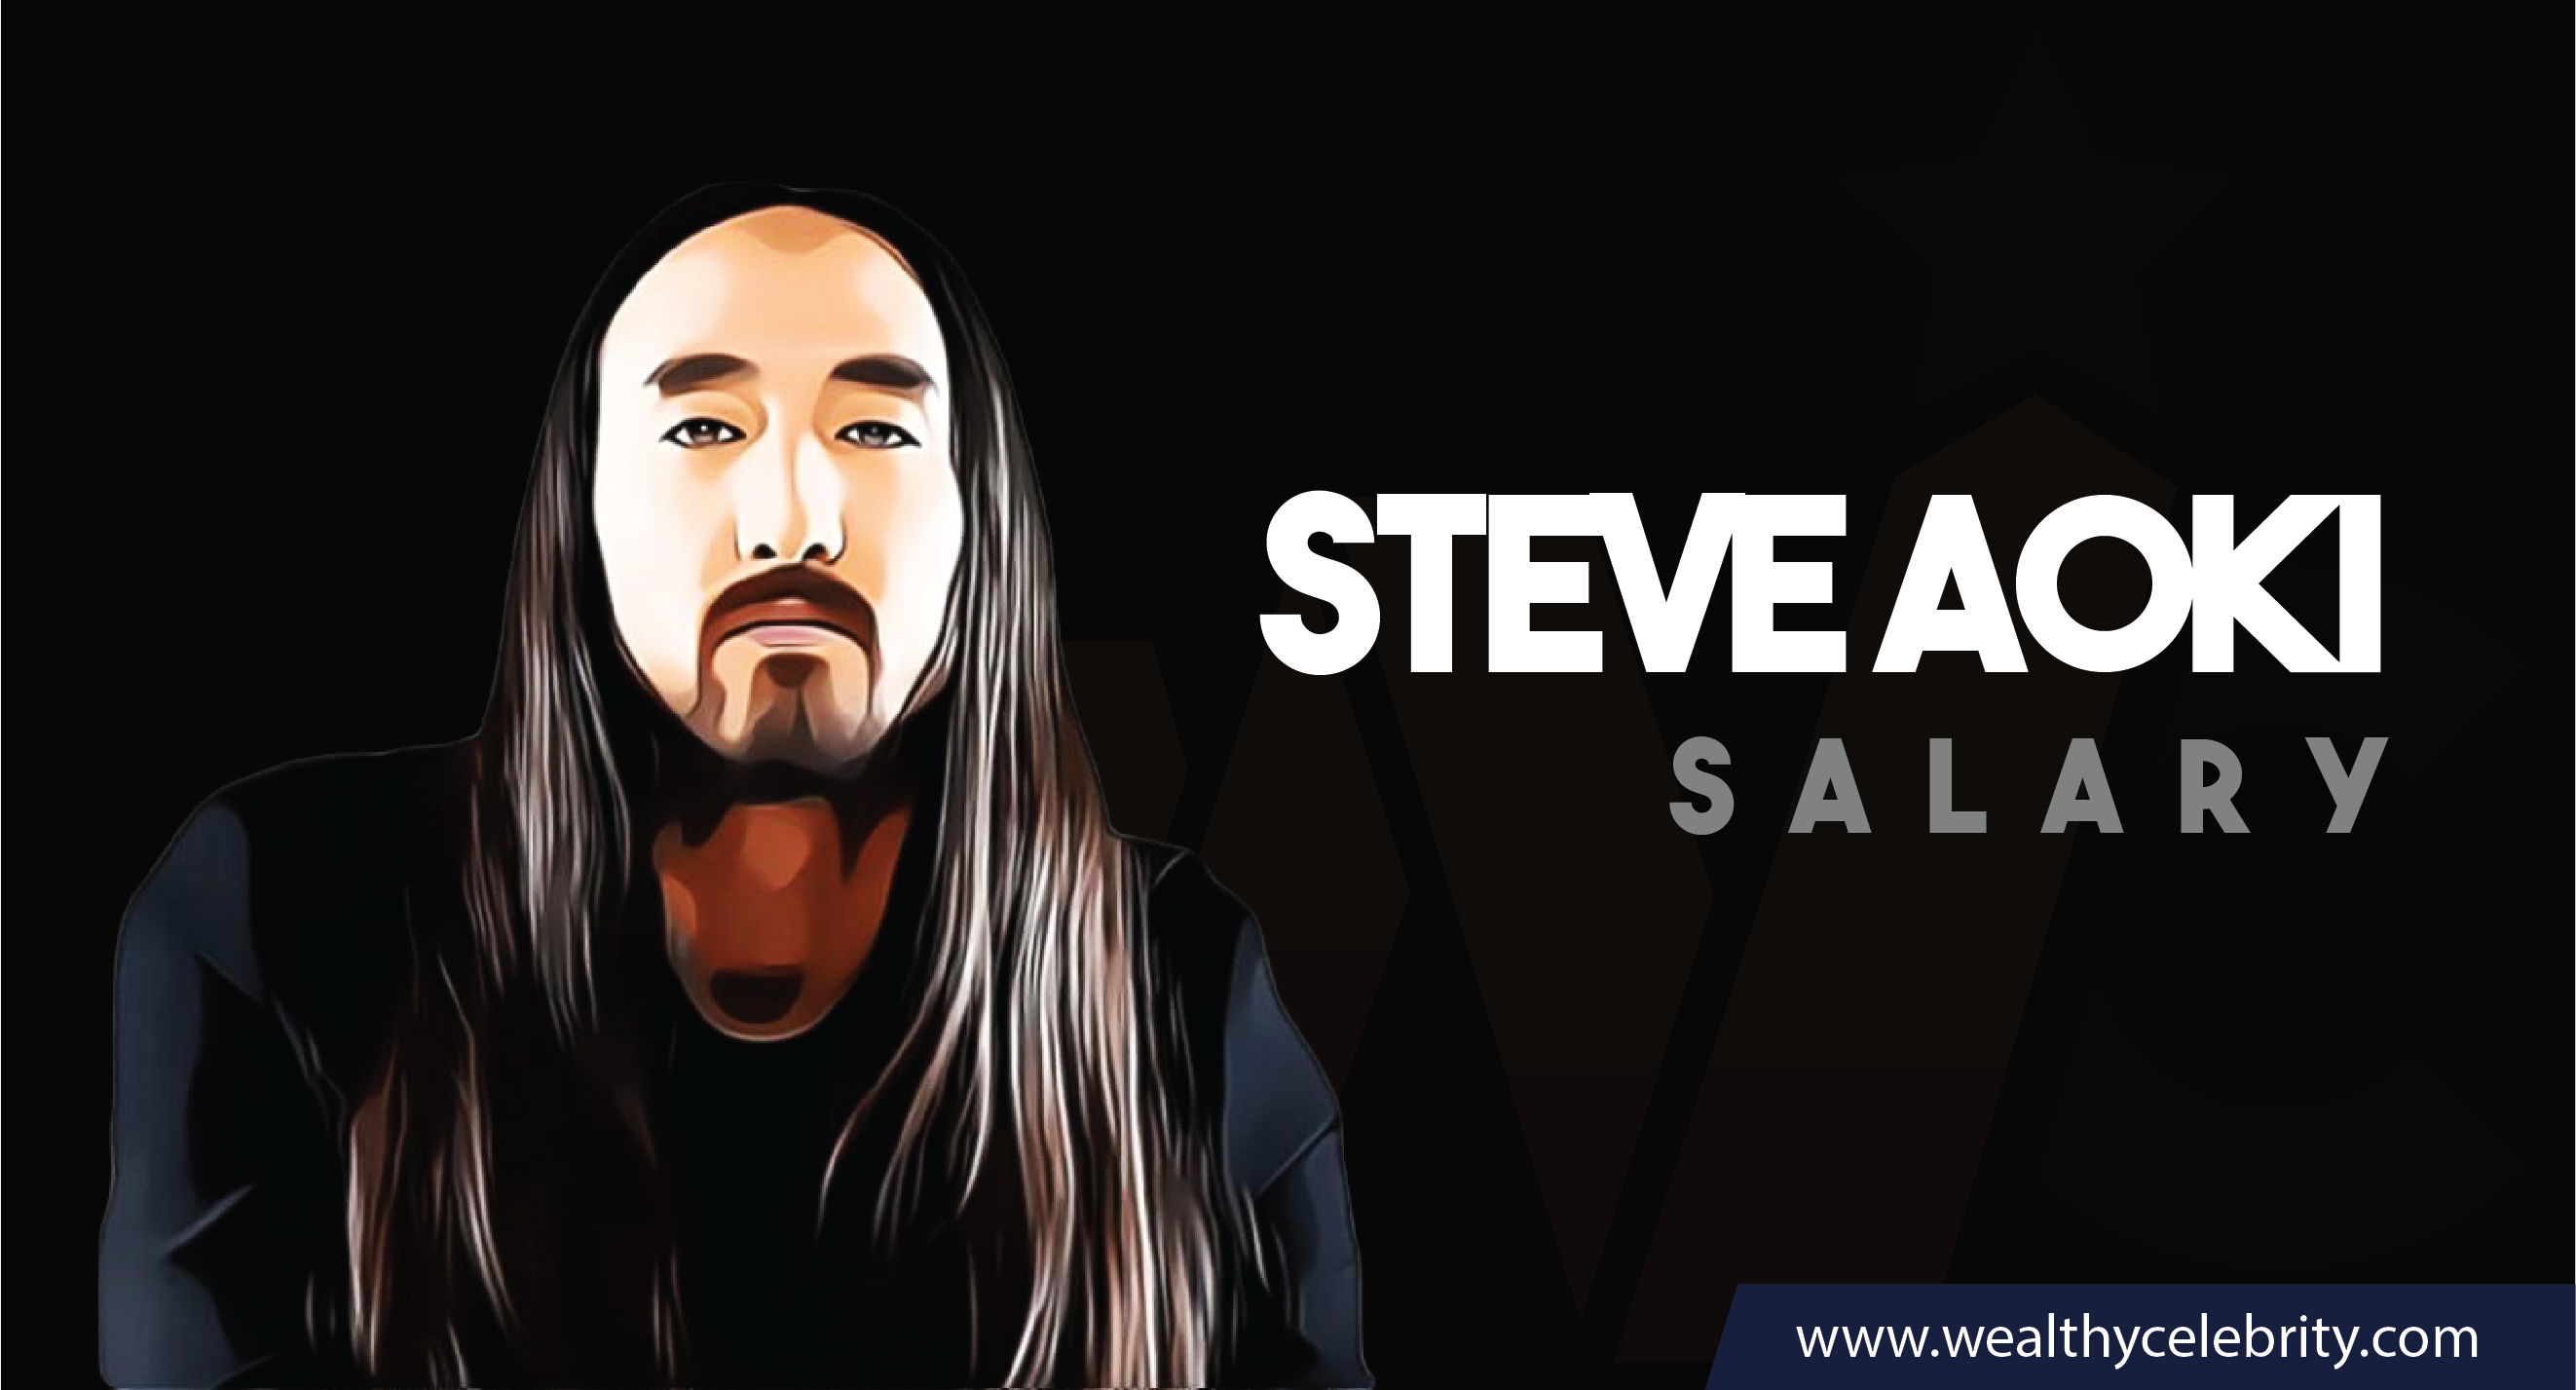 Steve Aoki DJ - Current Salary Net Worth